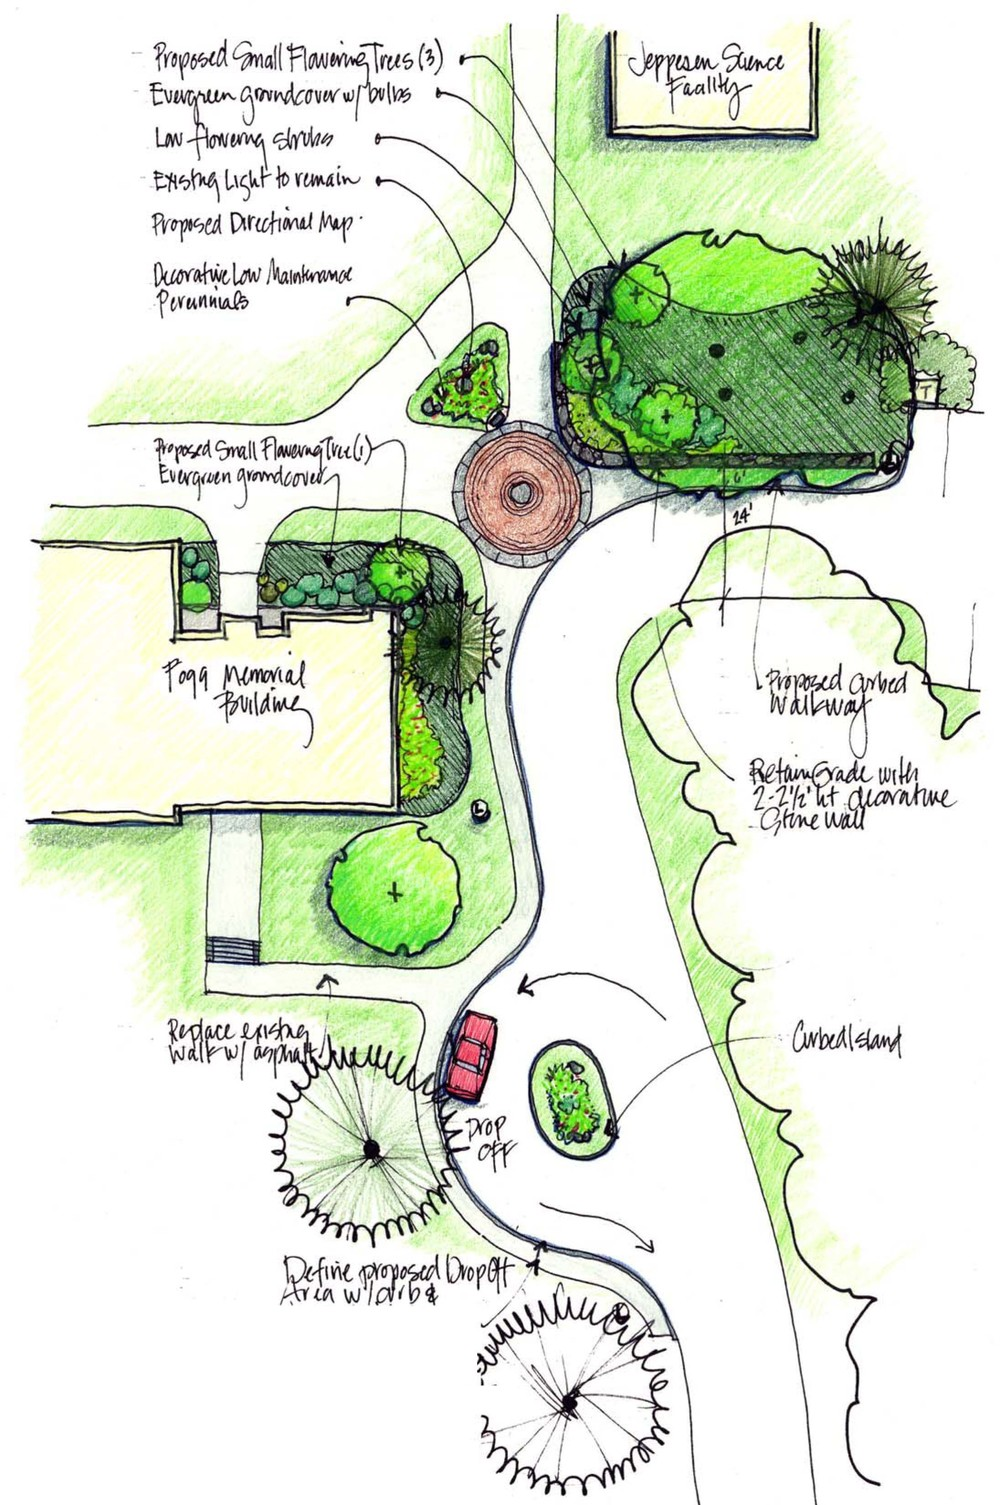 South Entry Landscape Plan color.jpg